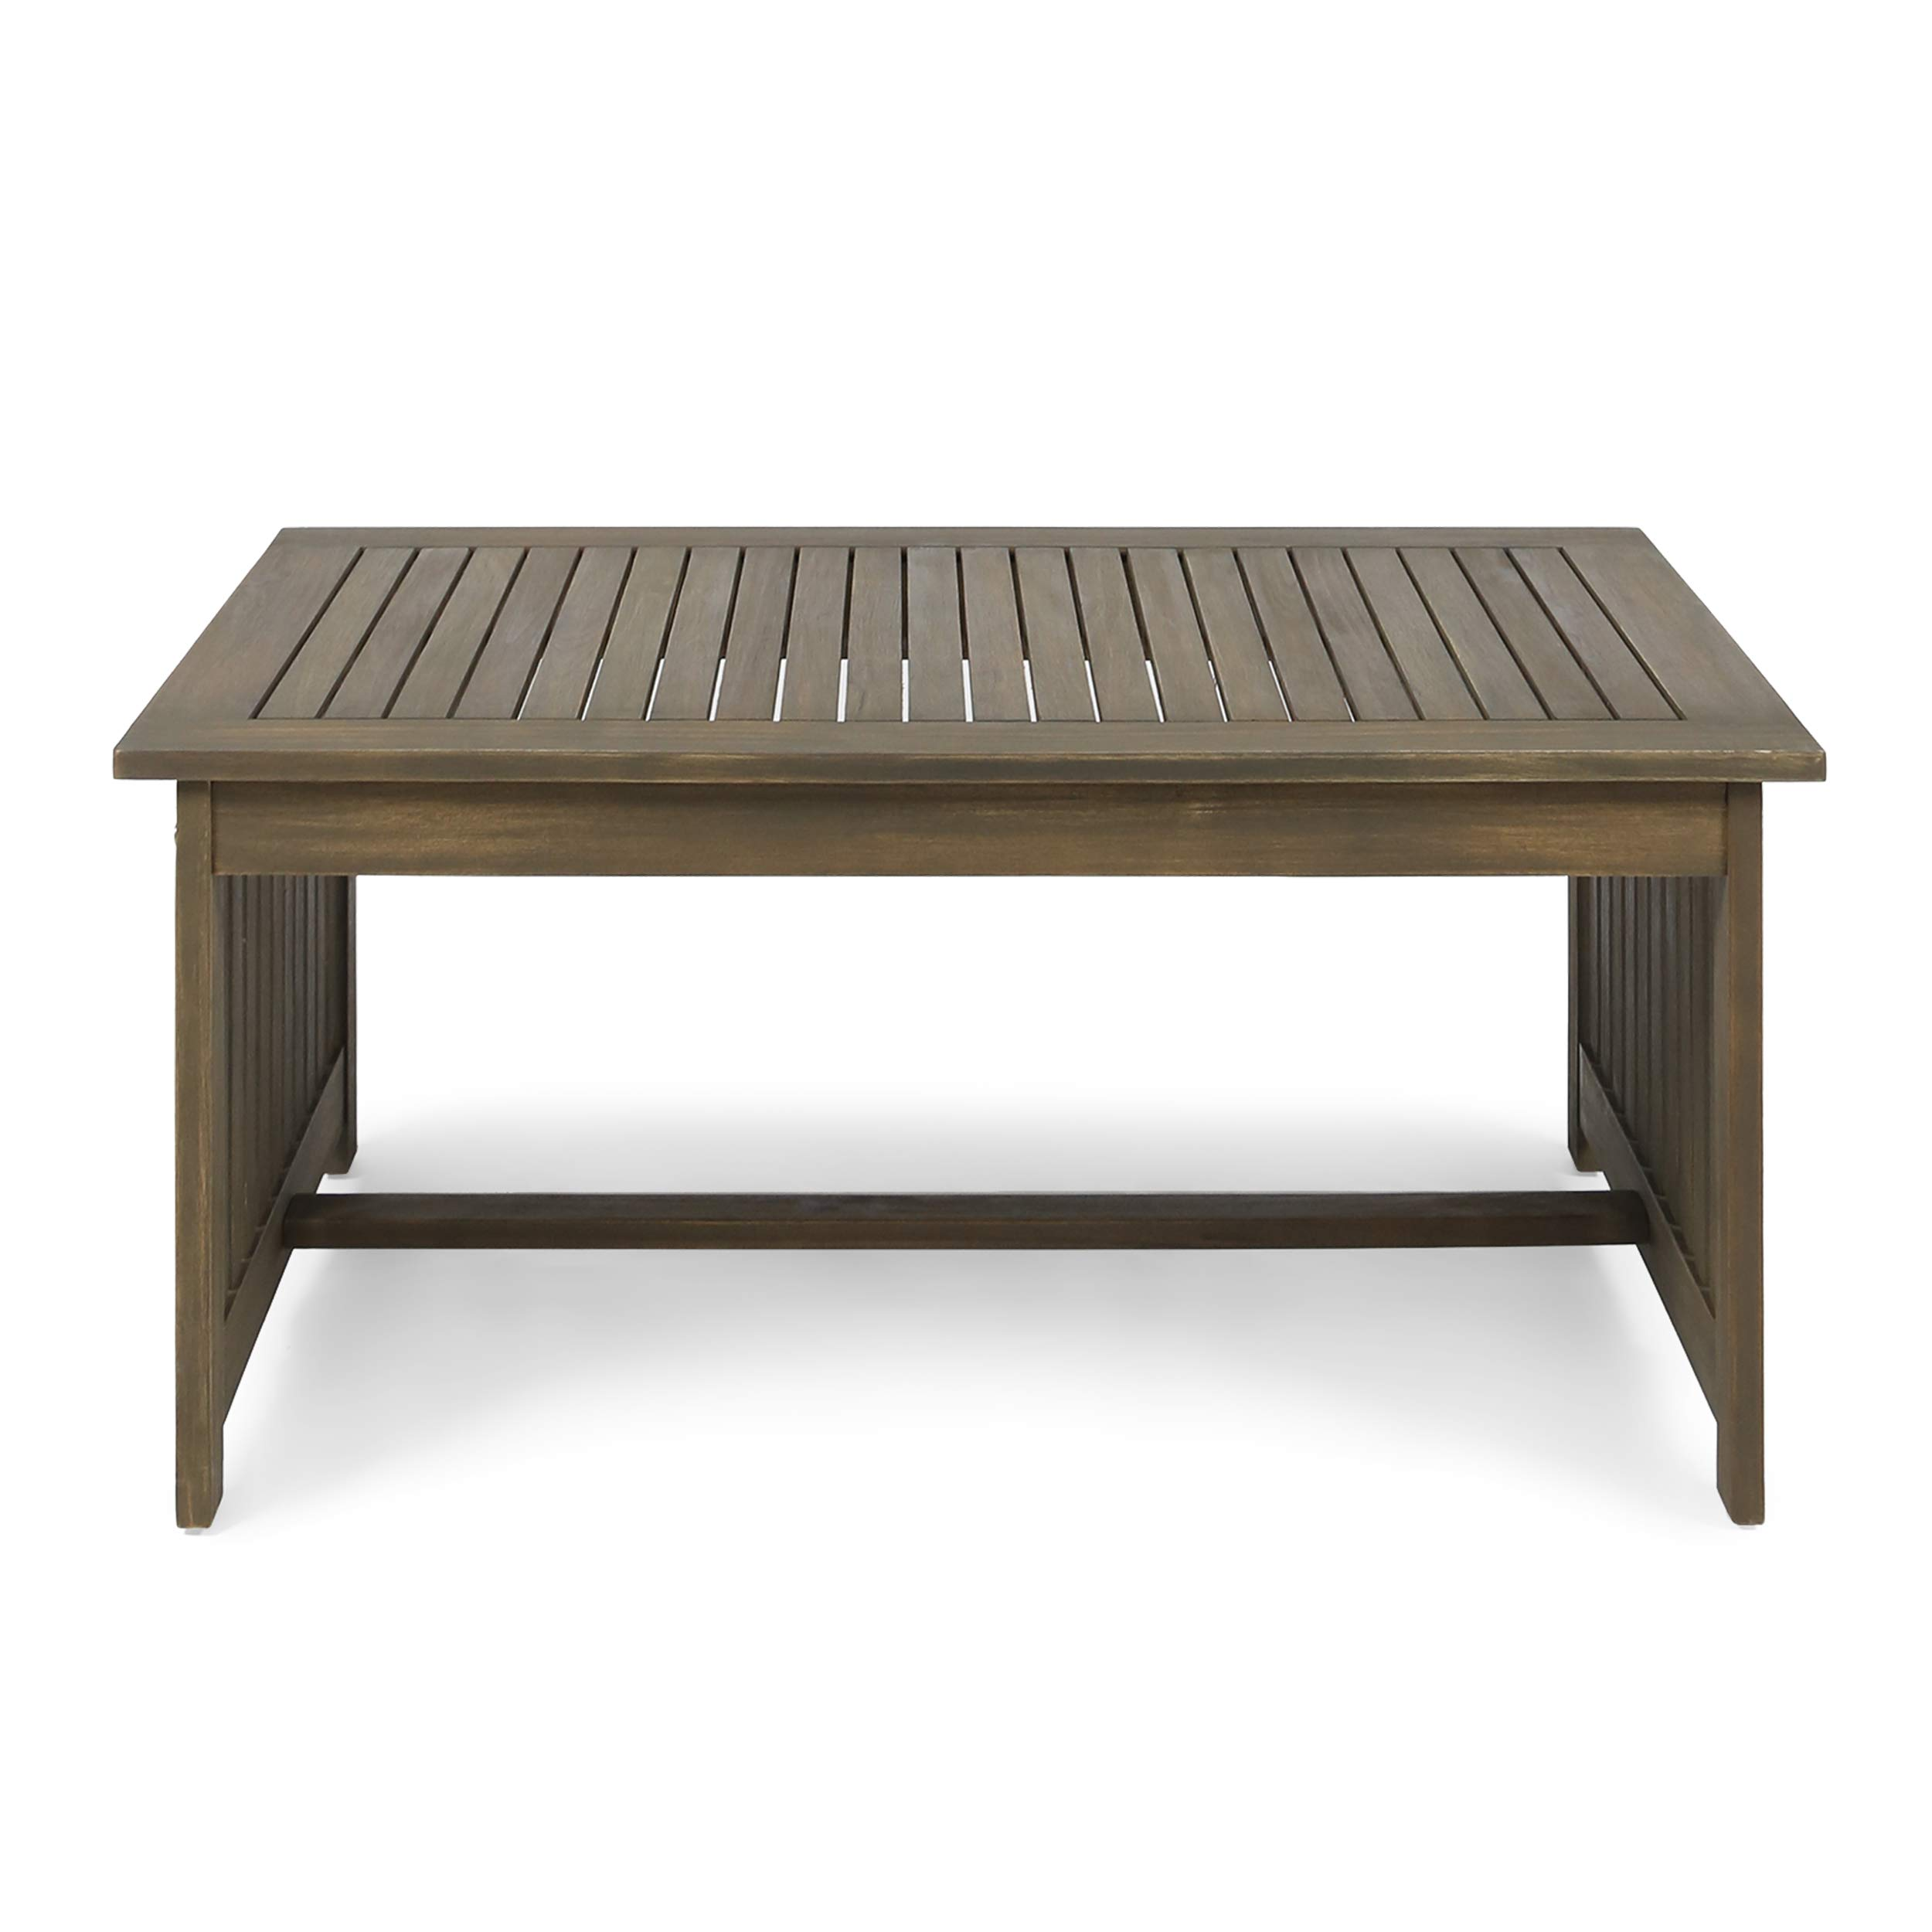 Christopher Knight Home Grace Outdoor Acacia Wood Coffee Table, Gray Finish